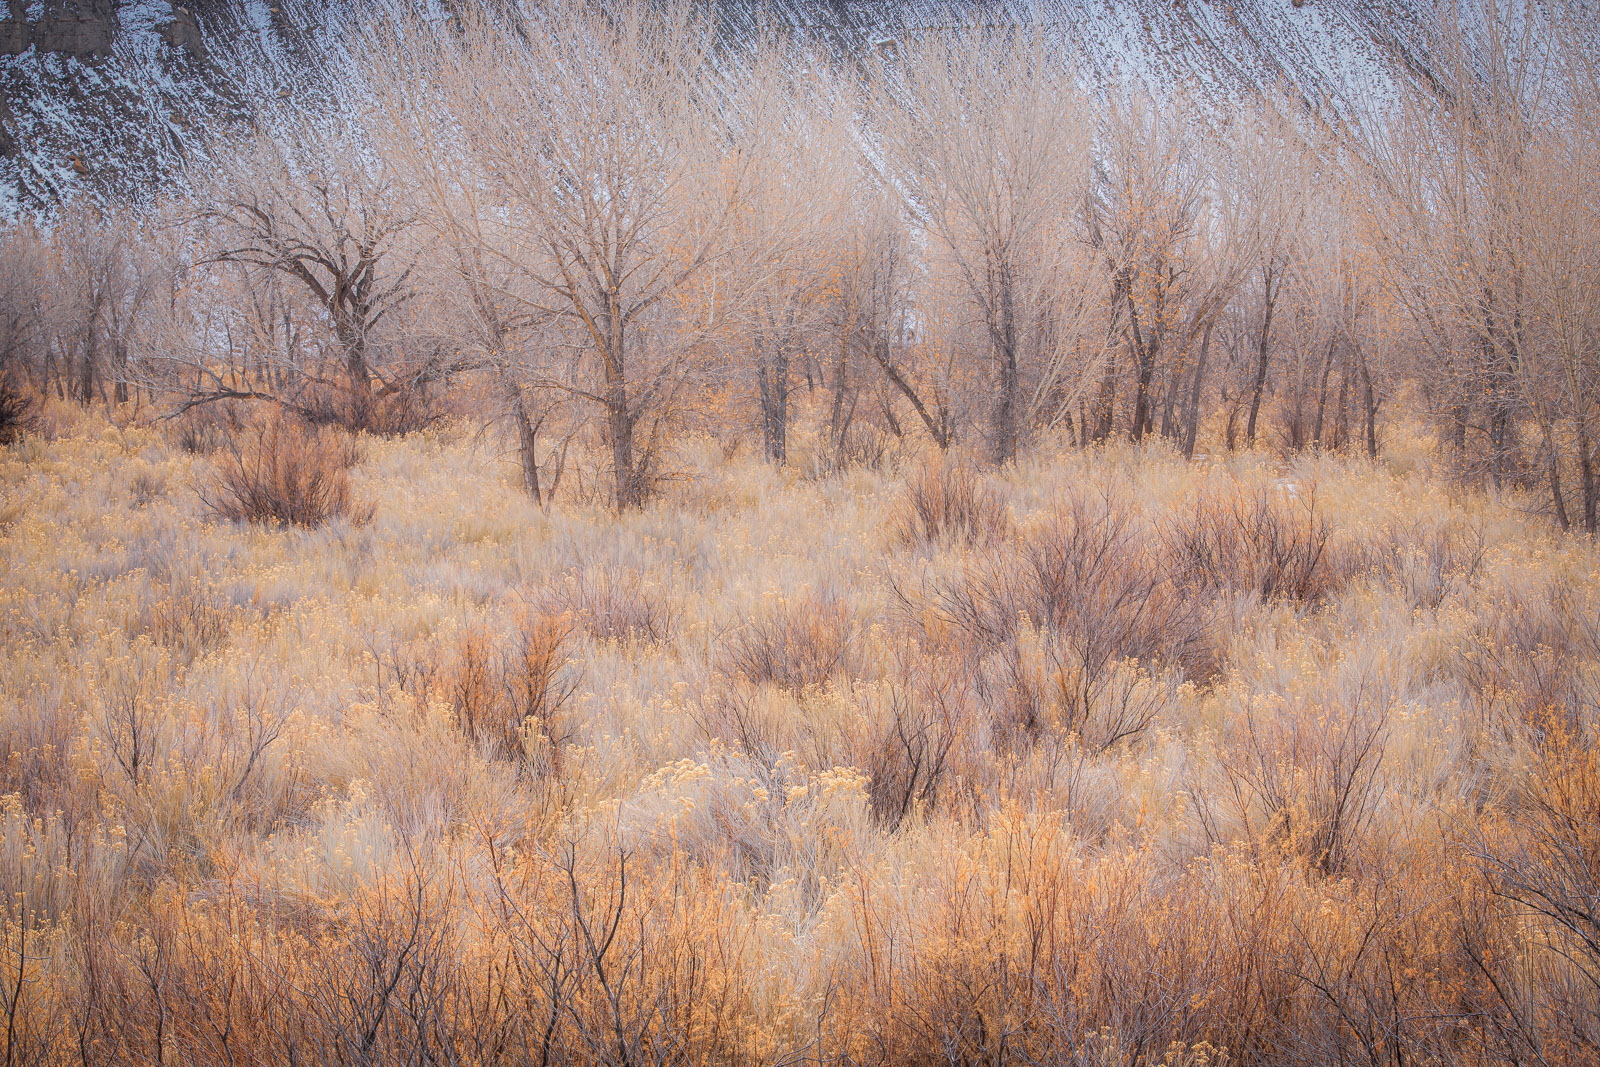 Winter pastels in the reparian cottonwoods and rabbit brush along the Fremont River.